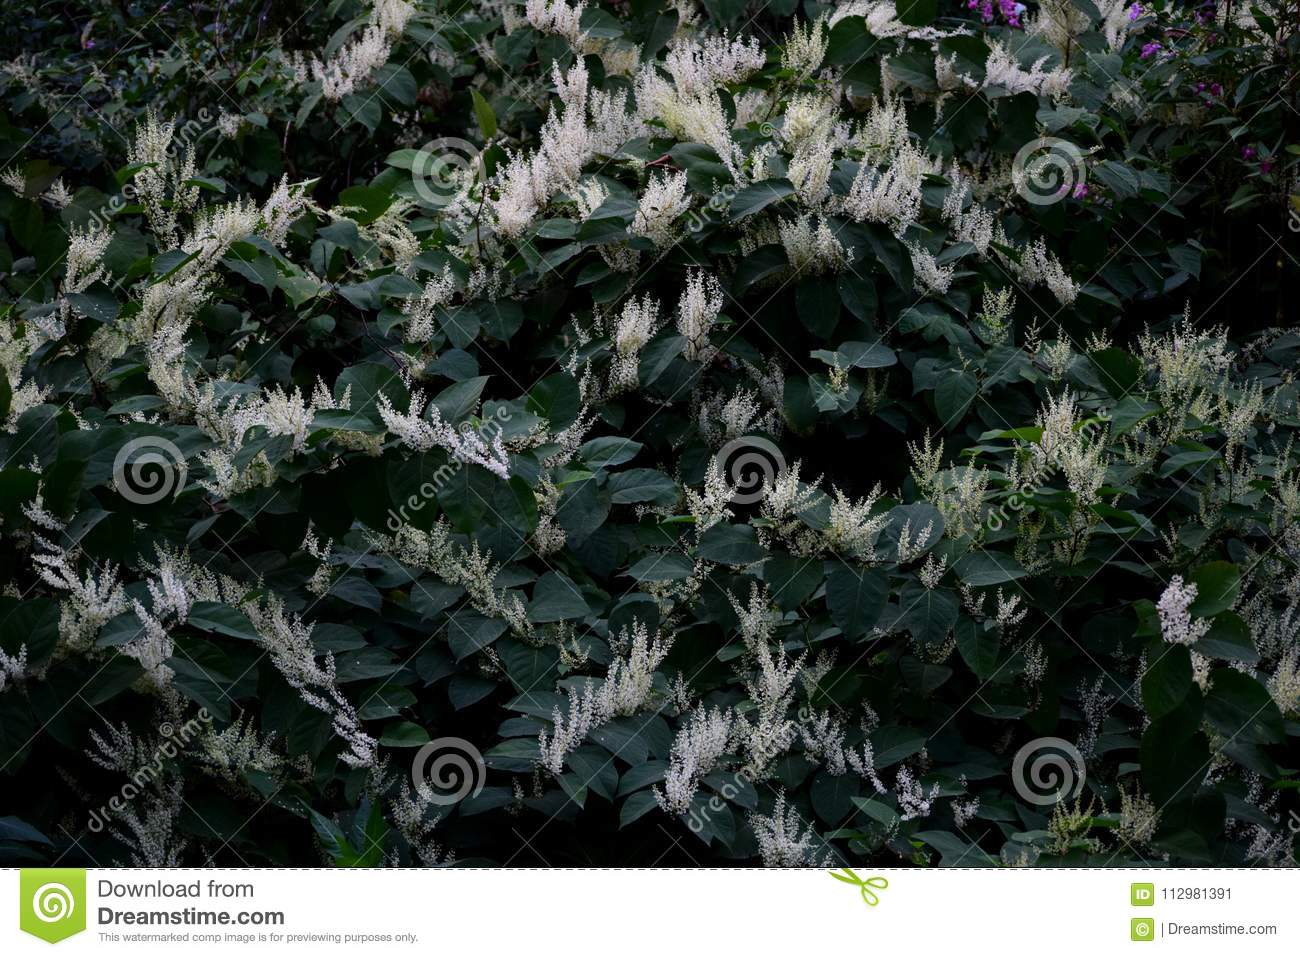 Wild vegetation with white flowers